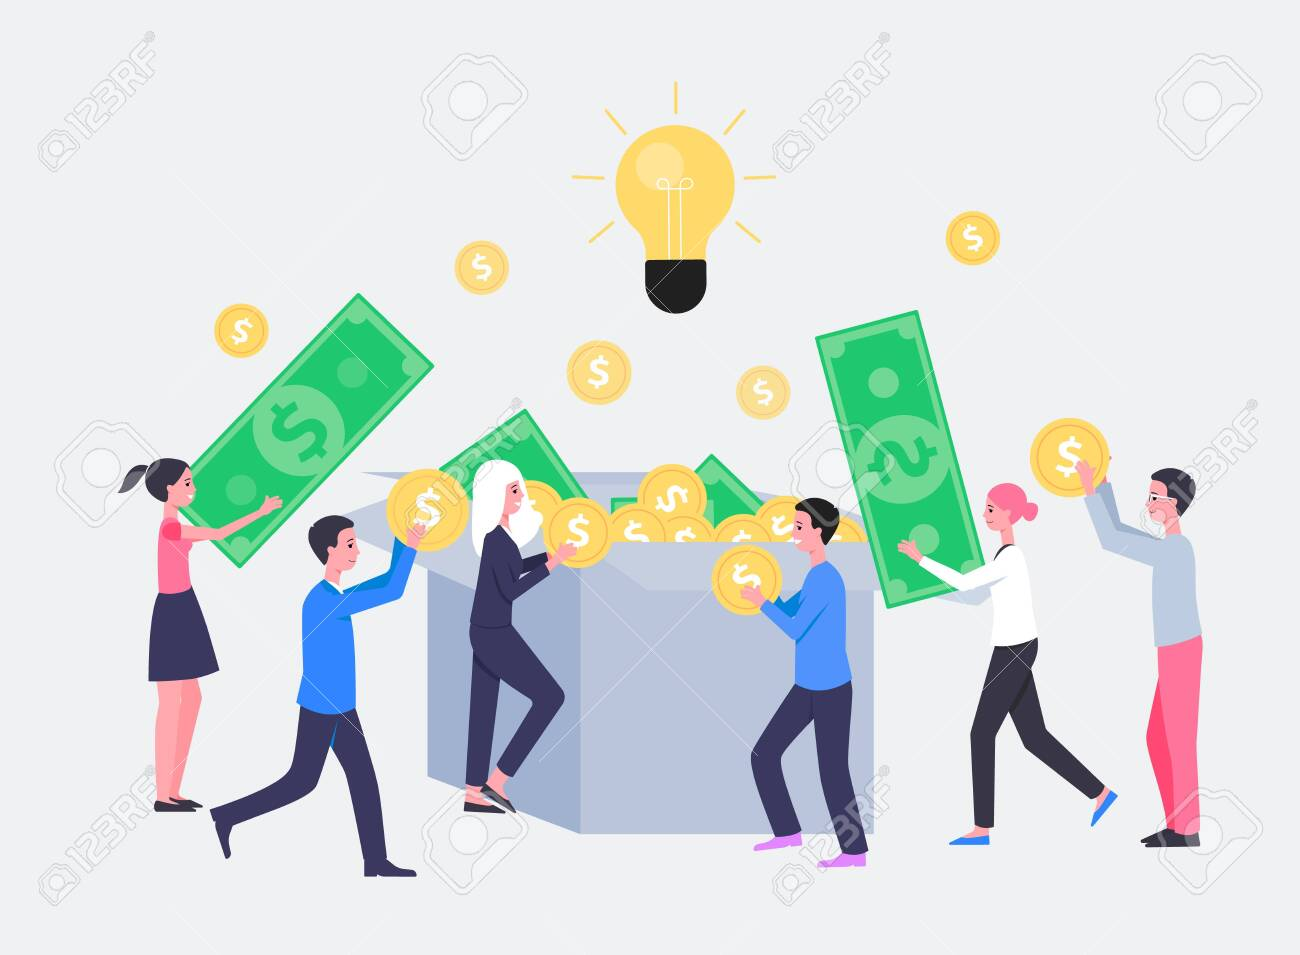 Crowdfunding or startup investment concept with cartoon people characters flat vector illustration isolated on white background. Project to donate money and support ideas. - 129267118